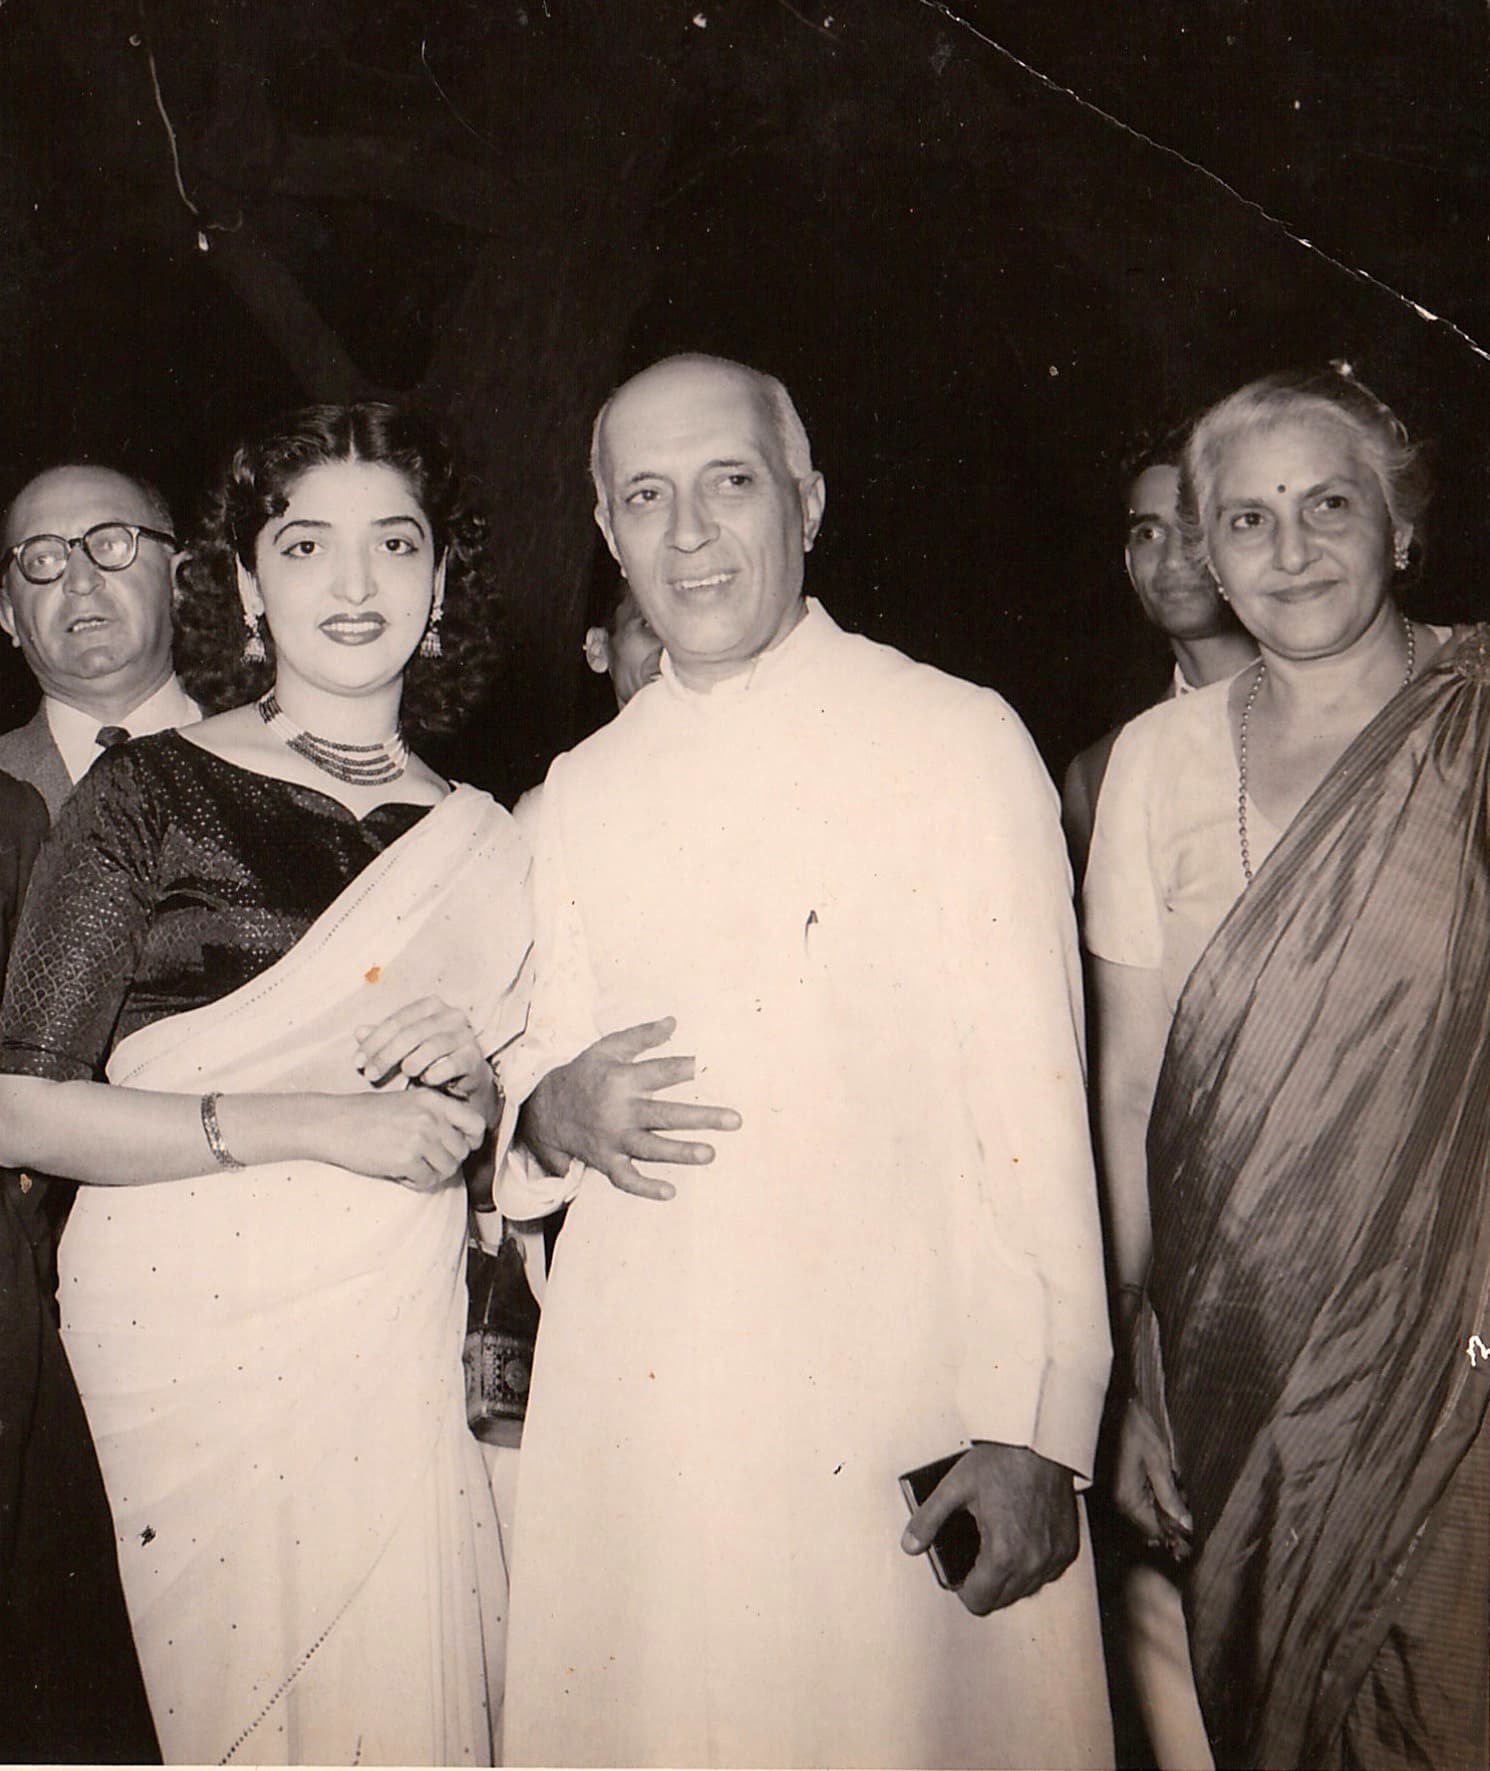 With Prime Minister Jawaharlal Nehru.